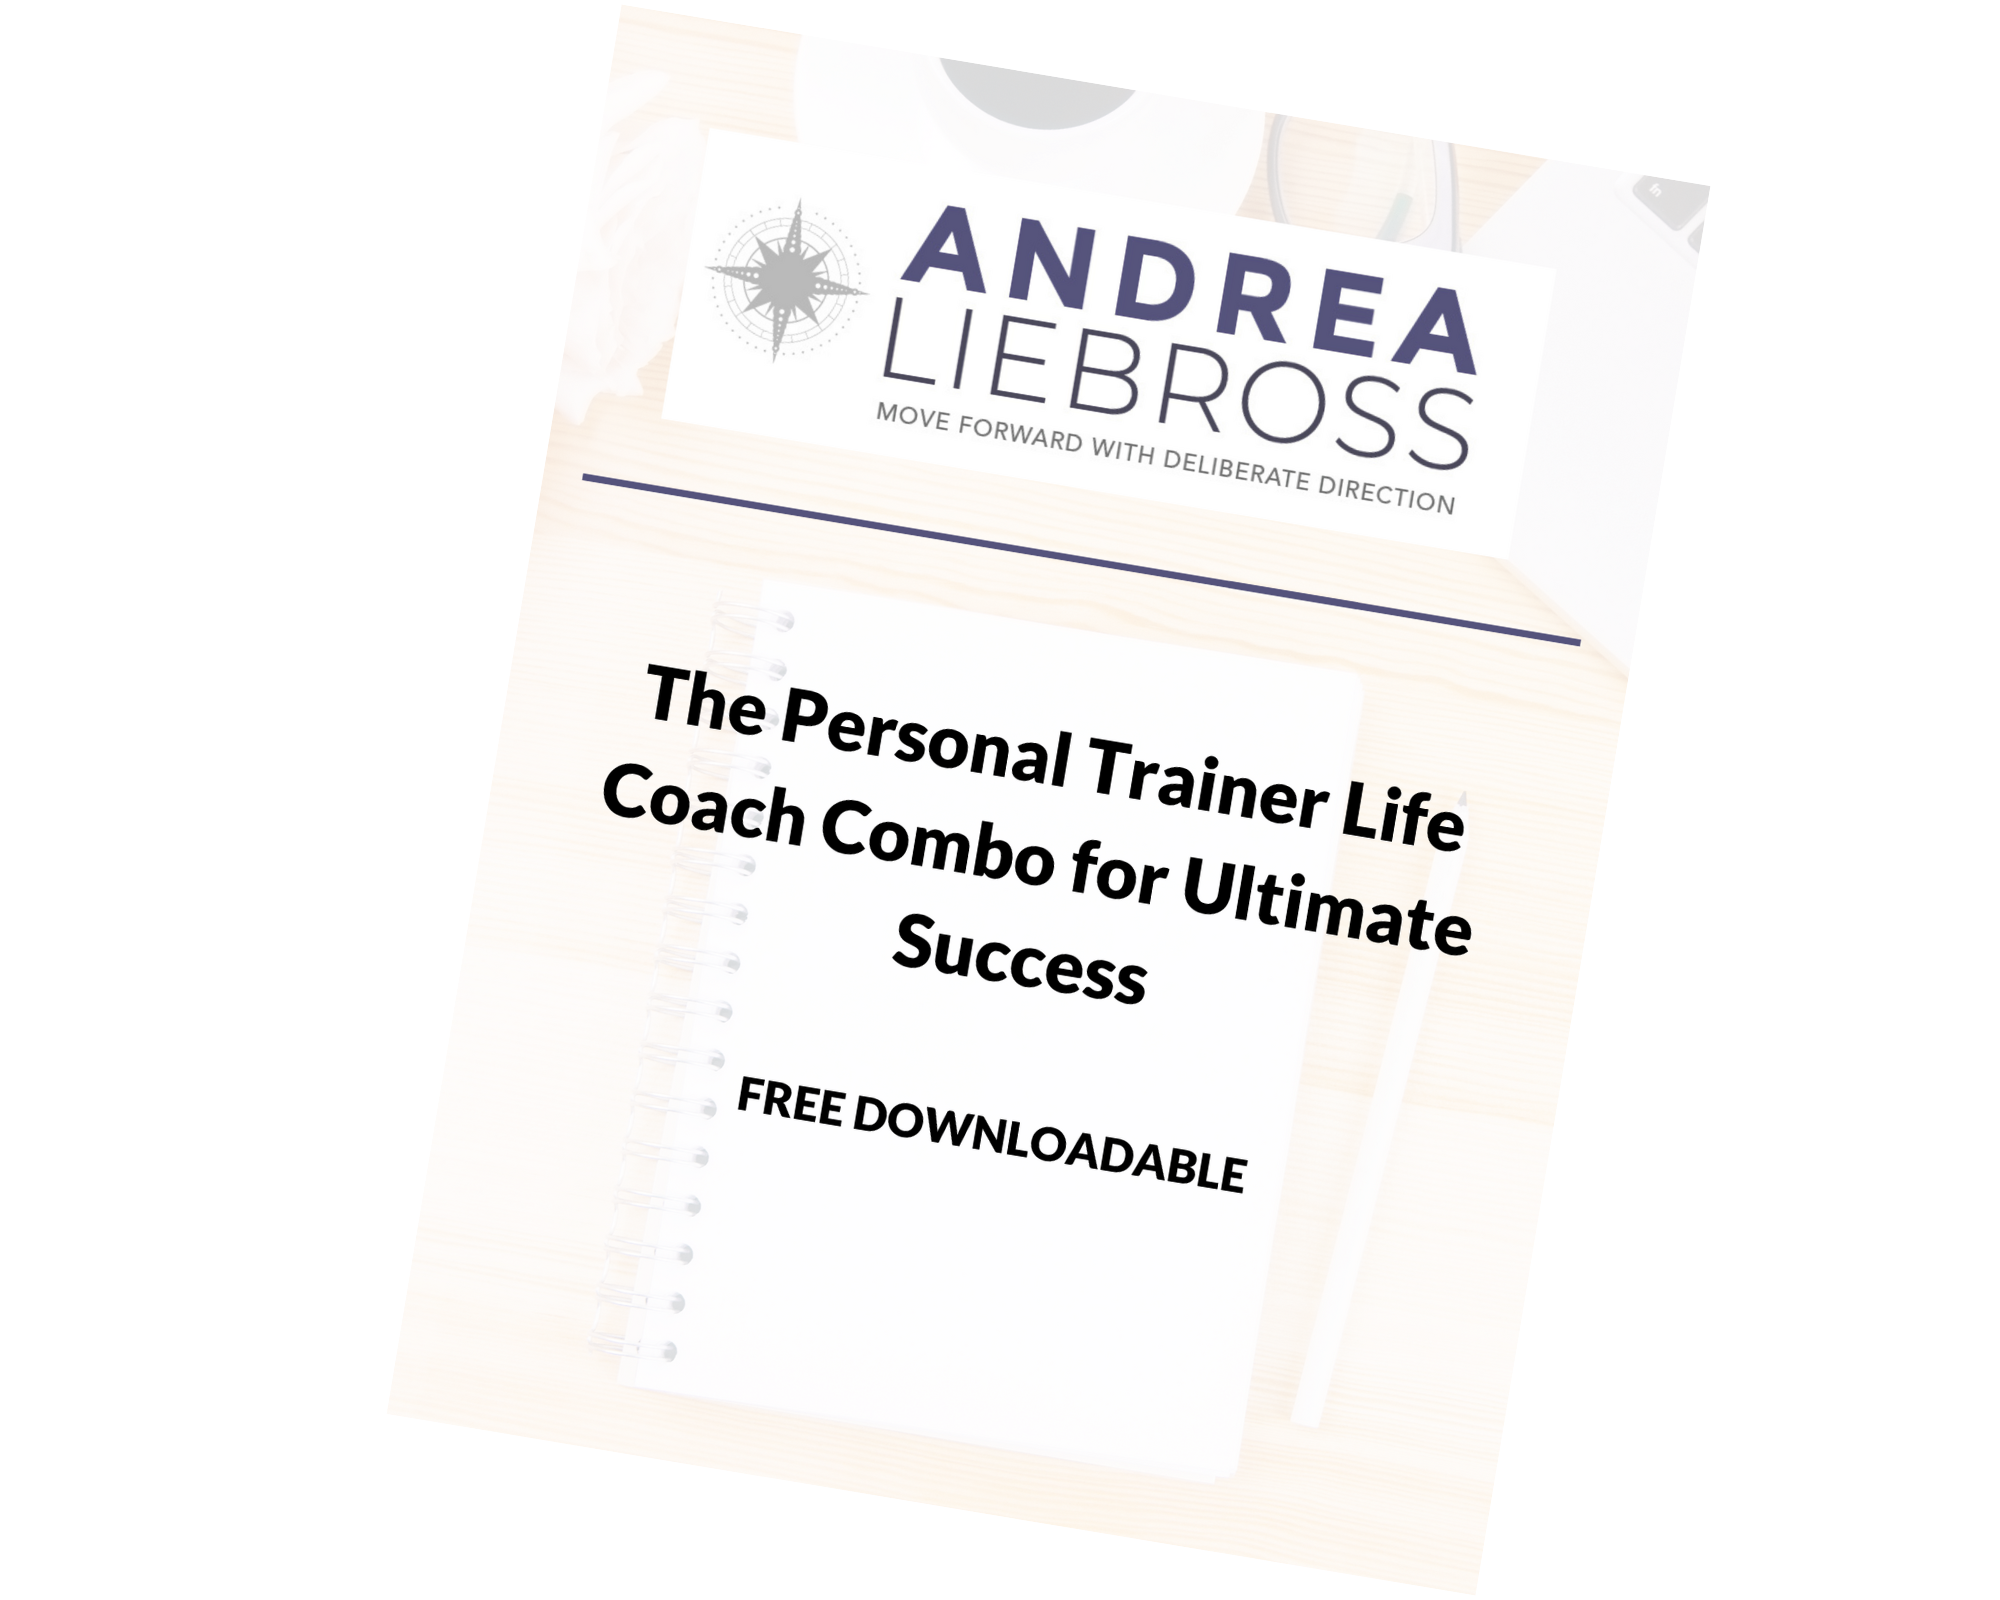 The Personal Trainer Life Coach Combo for Ultimate Success